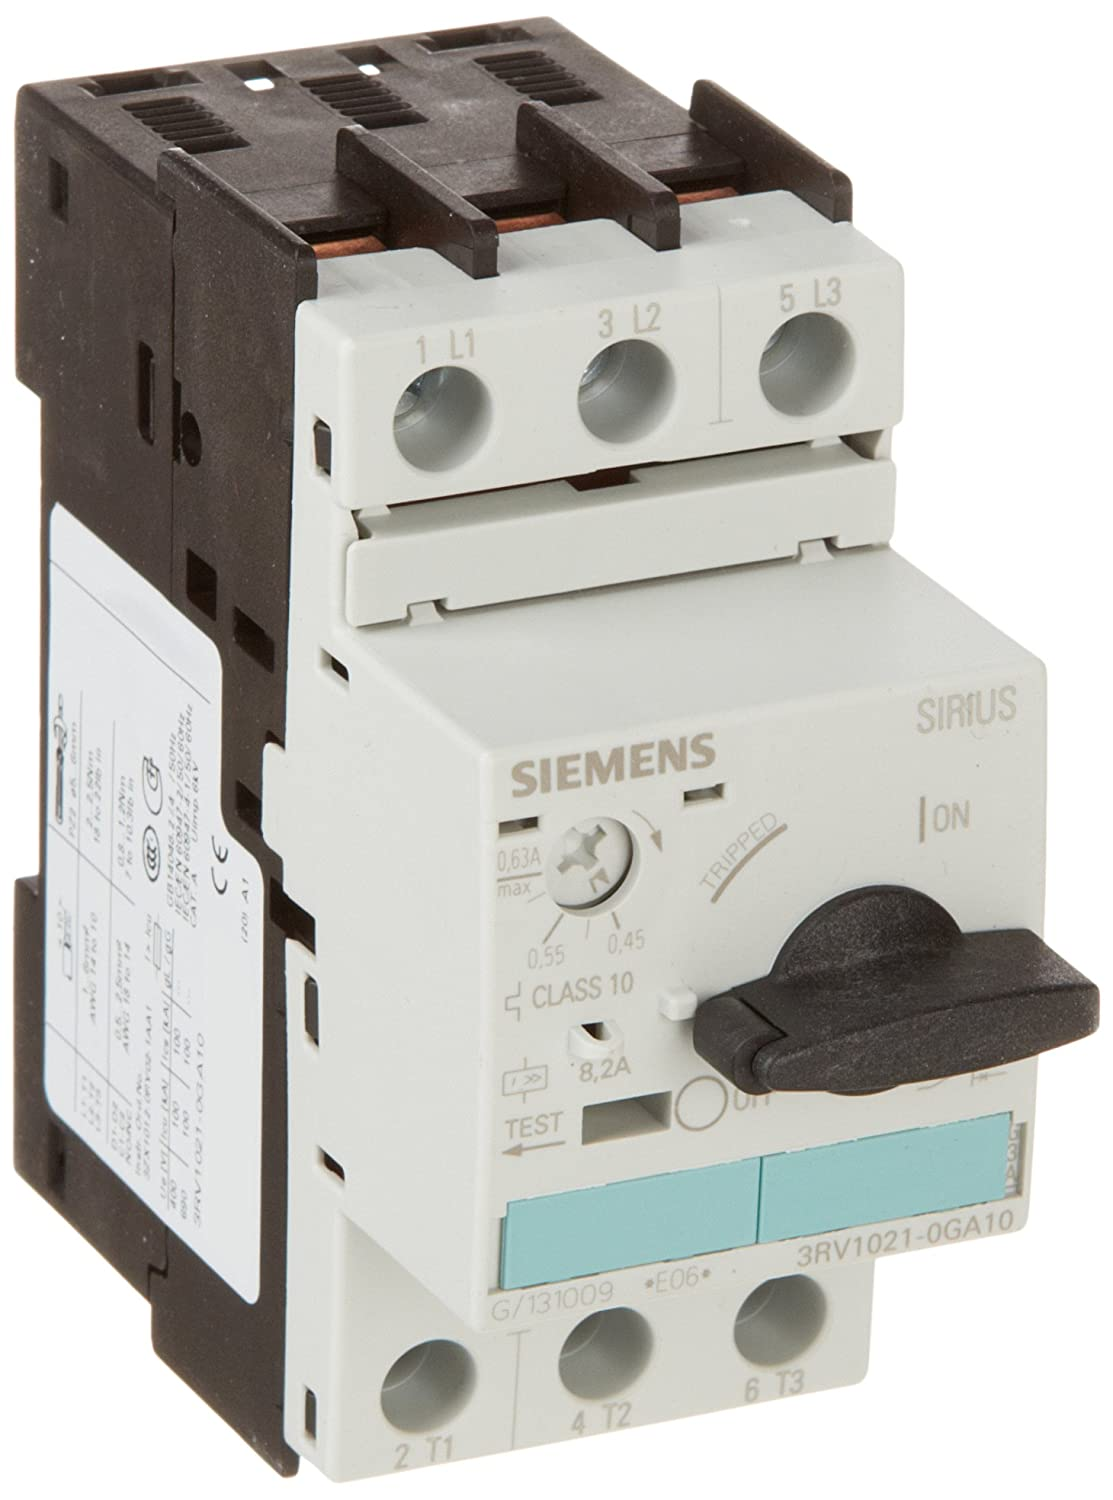 Siemens 3RV1021-0GA10 Manual Starter and Enclosure Open Type 0.45-0.63 FLA Adjustment Range